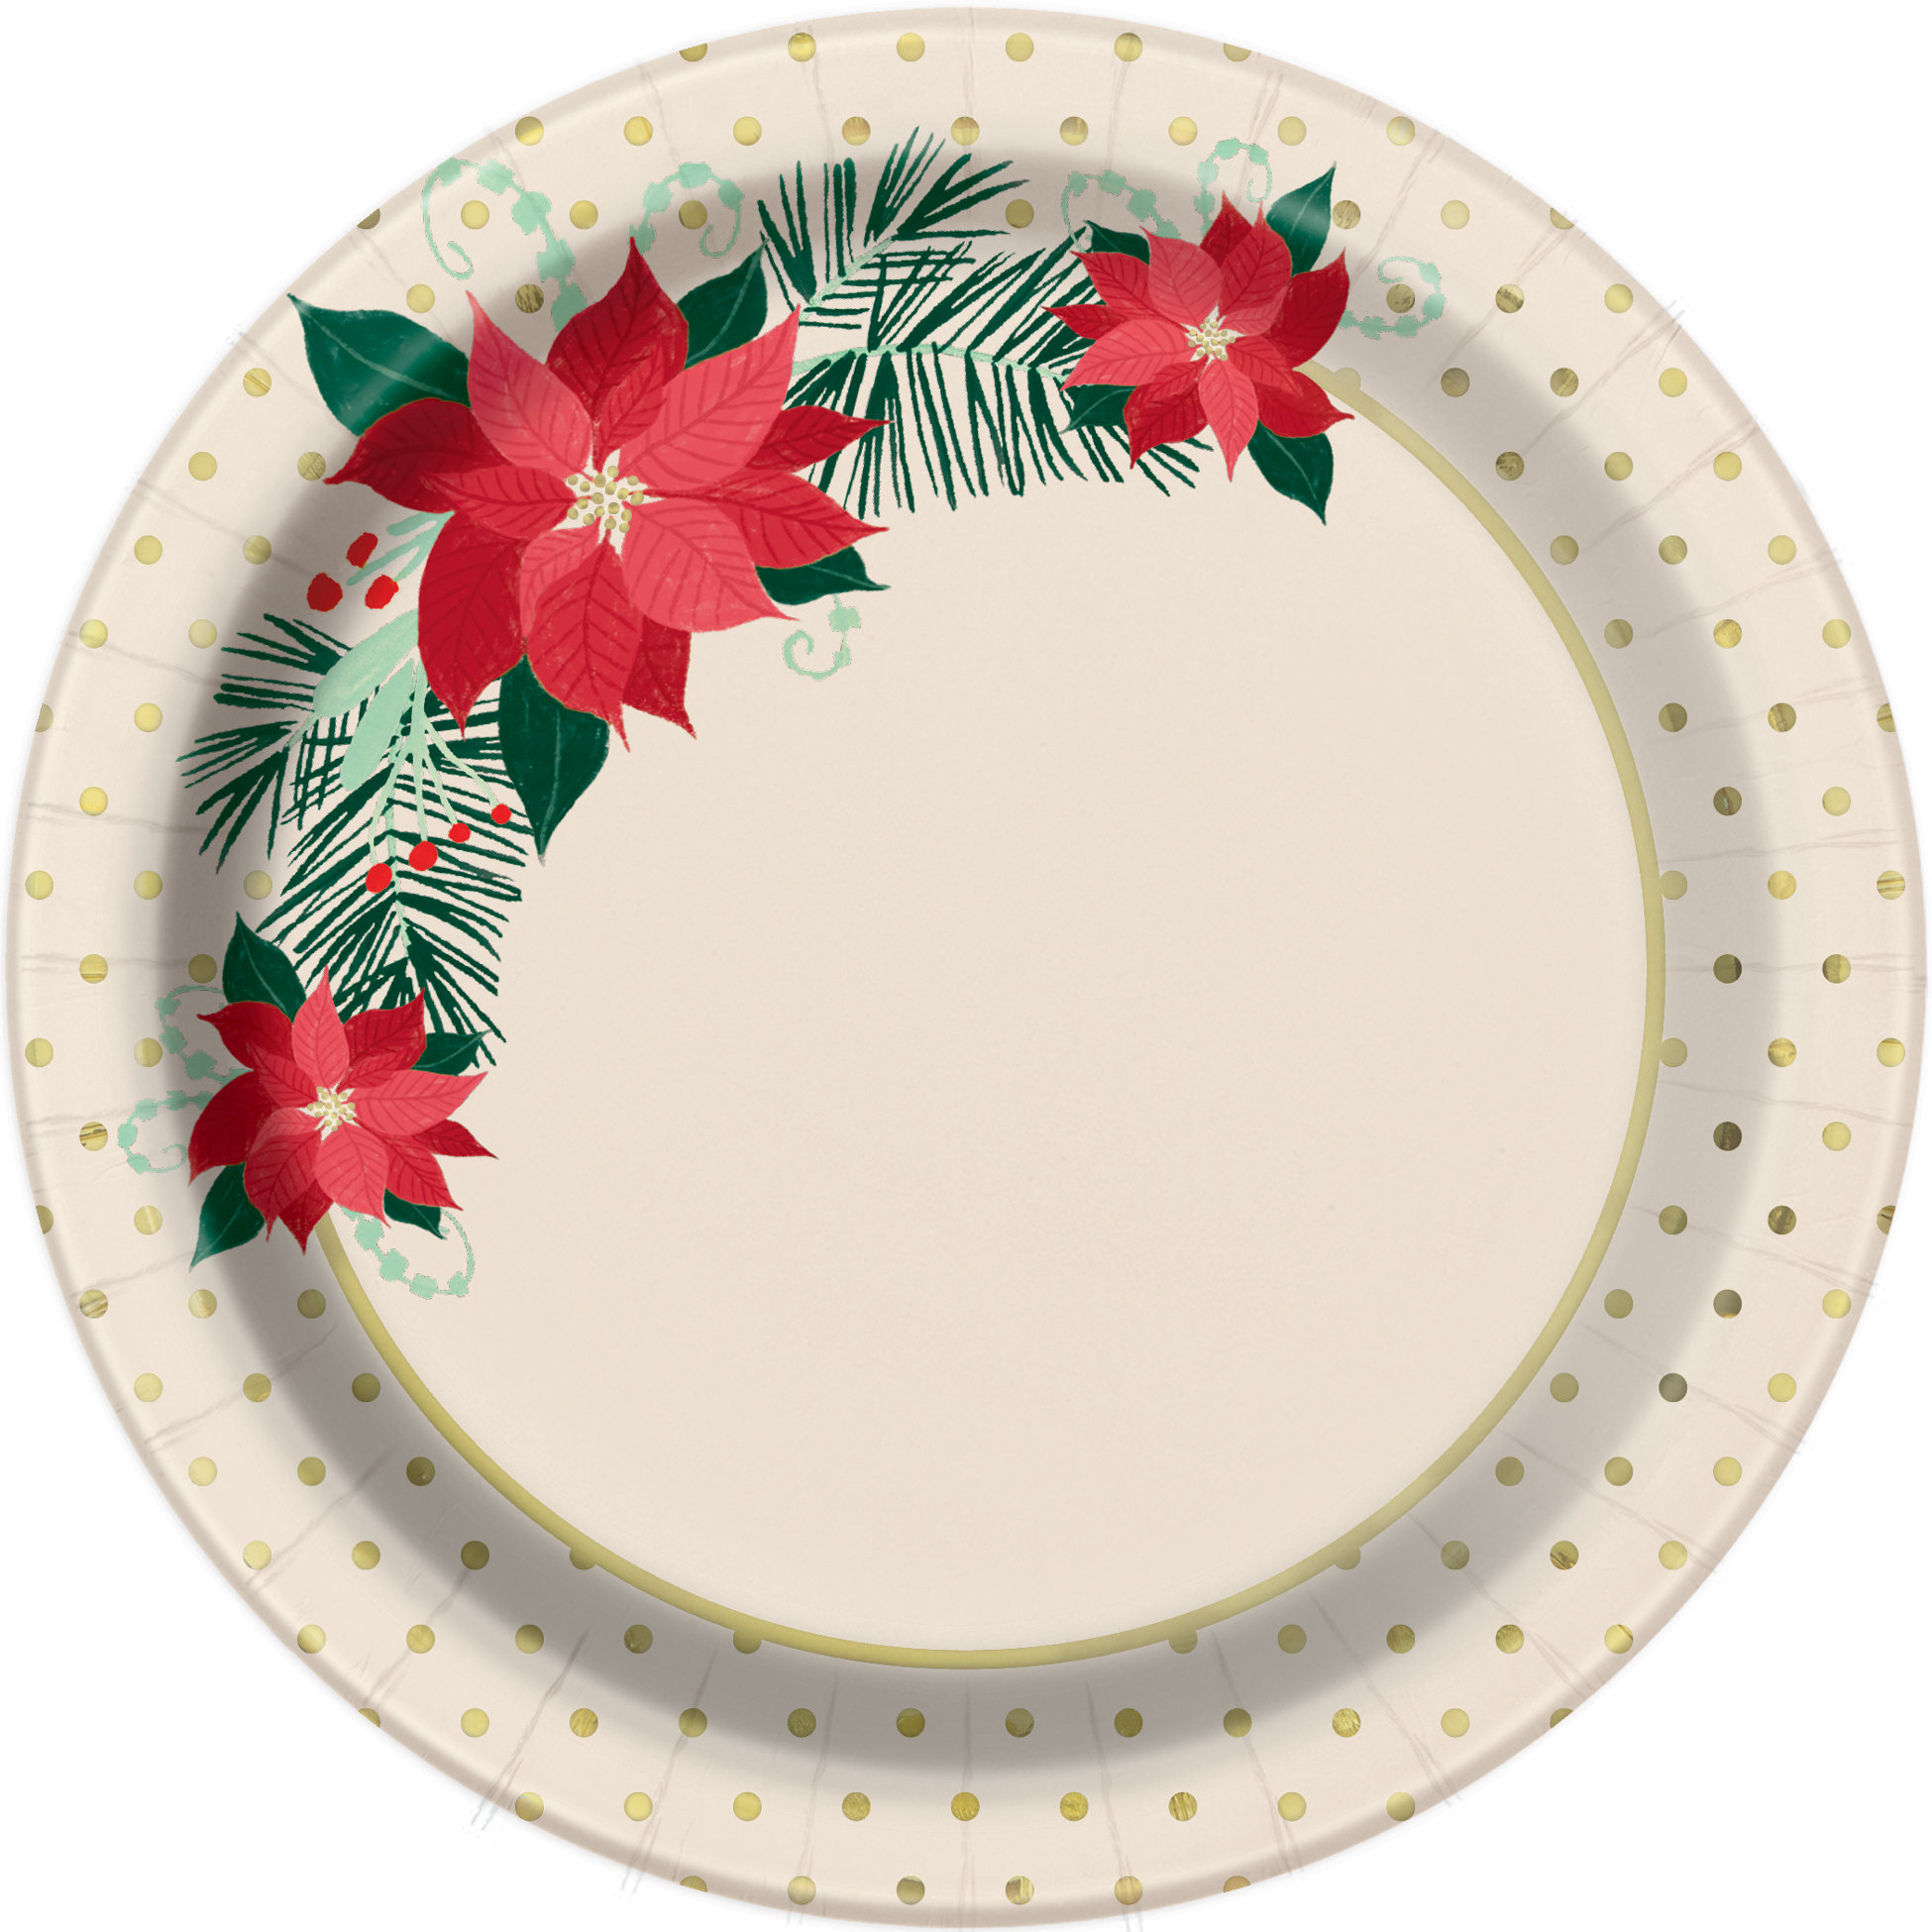 Christmas Paper Plates.Details About 8 Red Gold Poinsettia Traditional Christmas Paper Plates 18cm Gold Foil Finish